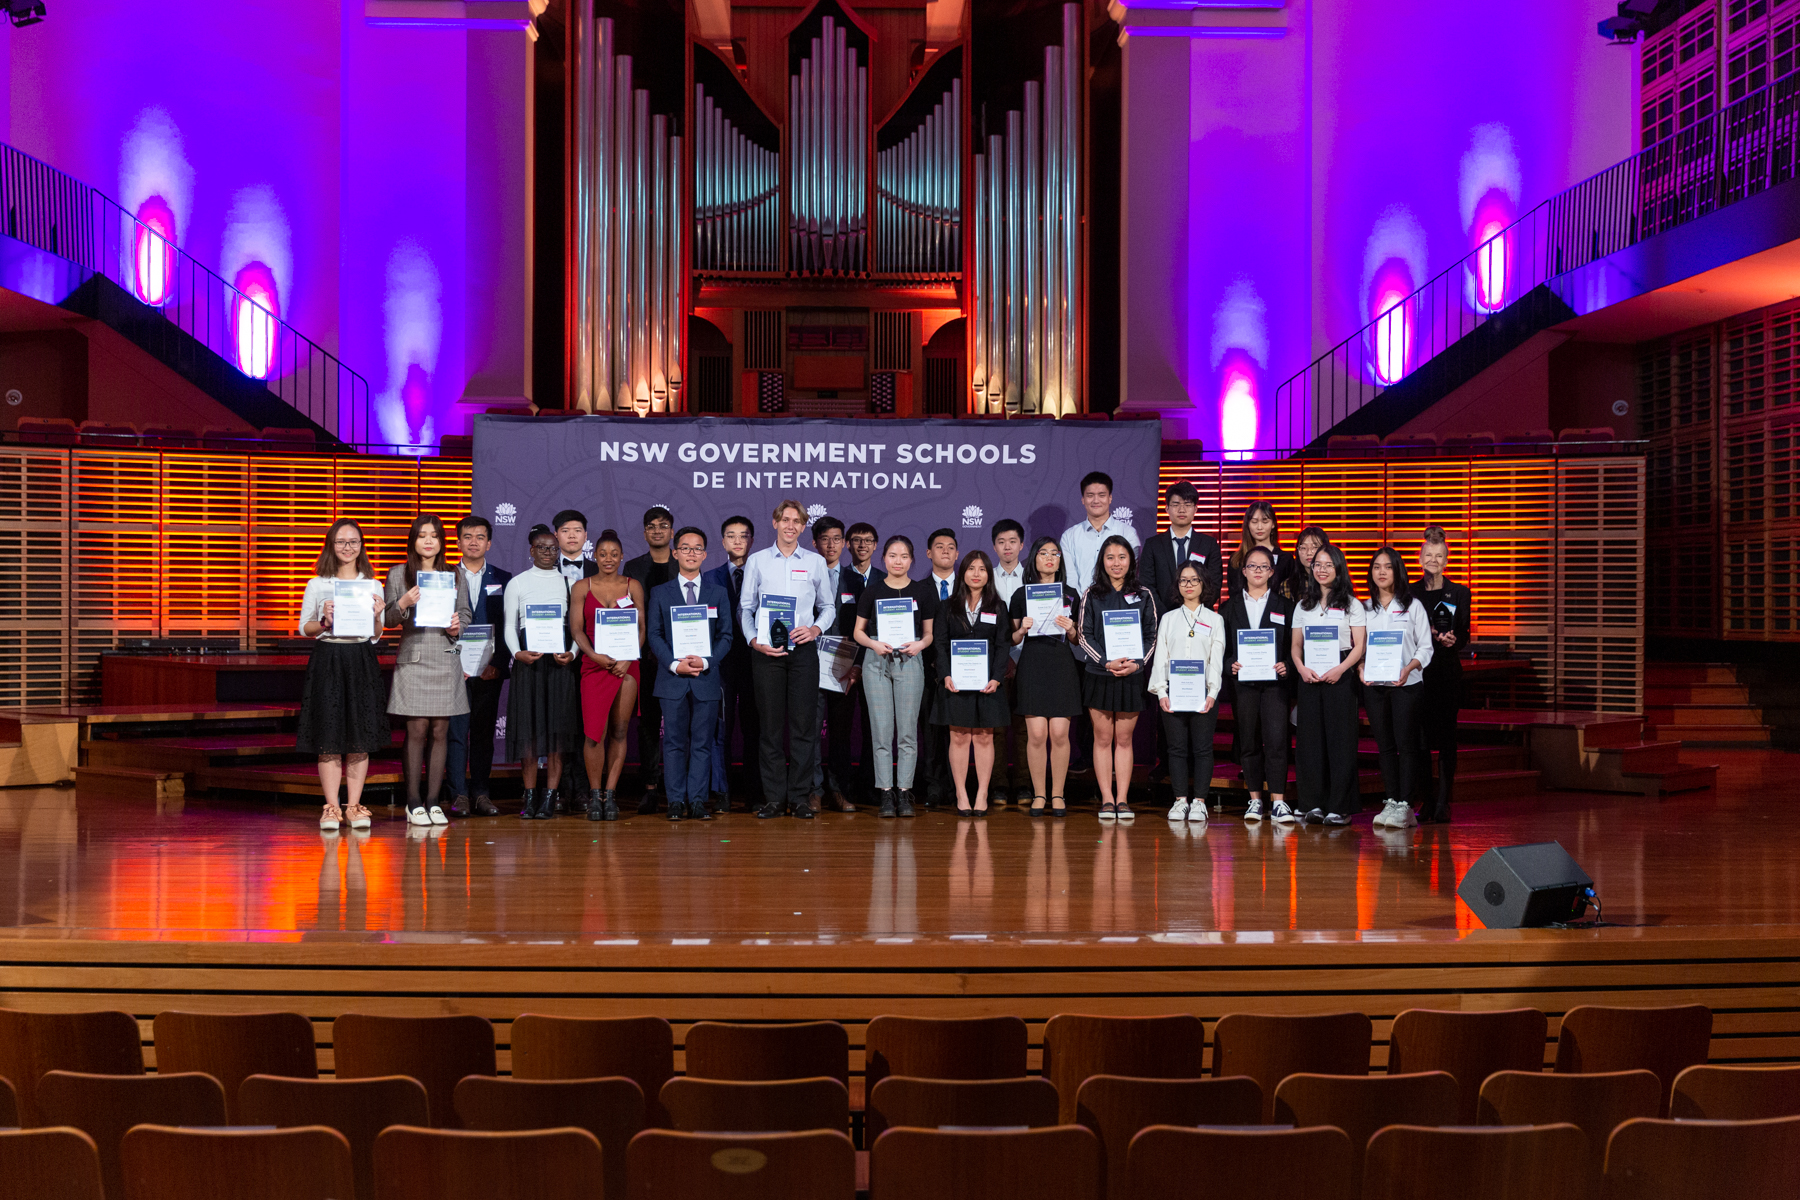 Students shortlisted for a 2020 NSW Government Schools International Student Award